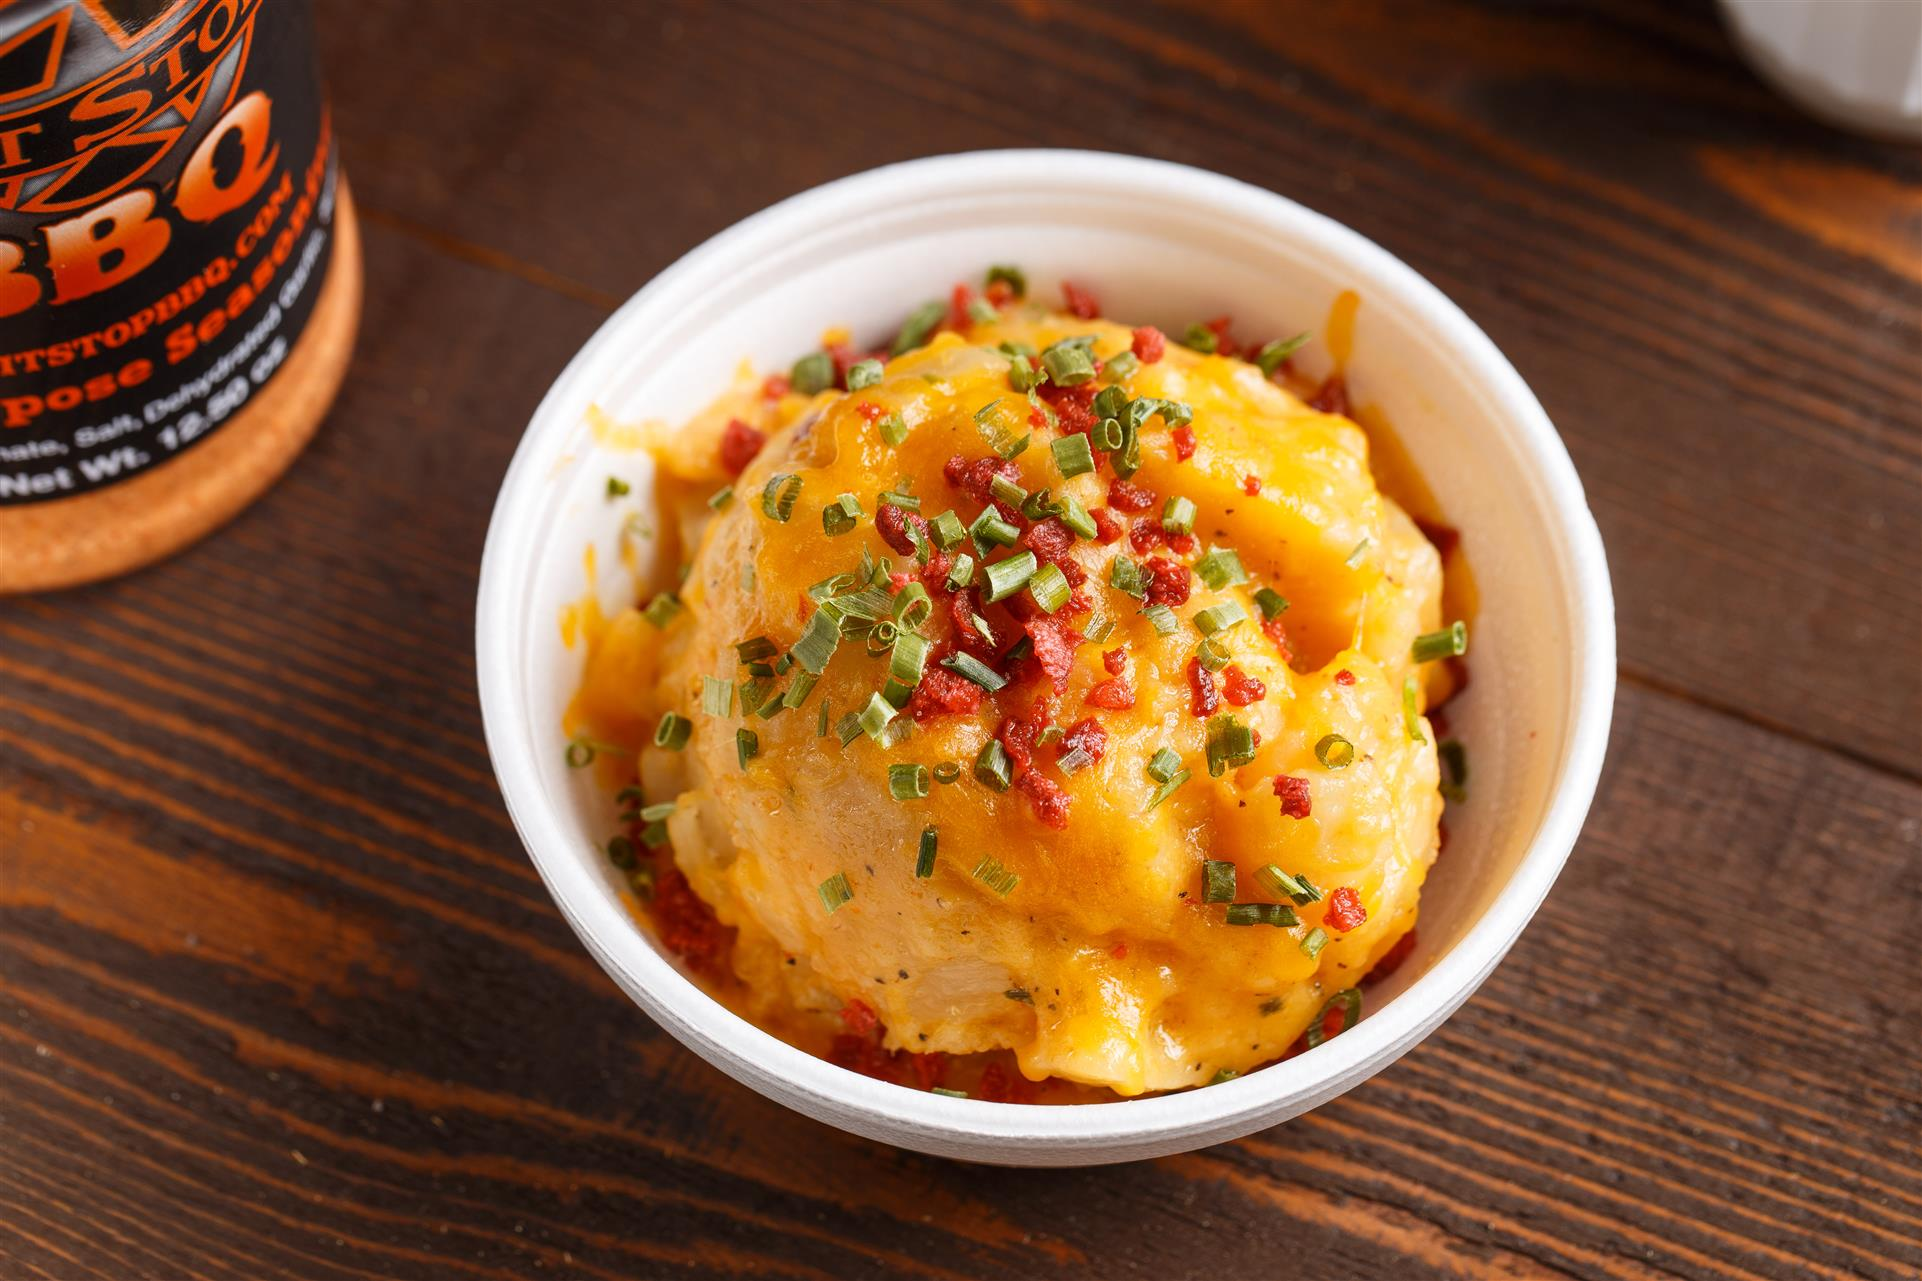 A bowl of mashed potatoes, covered in cheese, scallions, and bacon bits